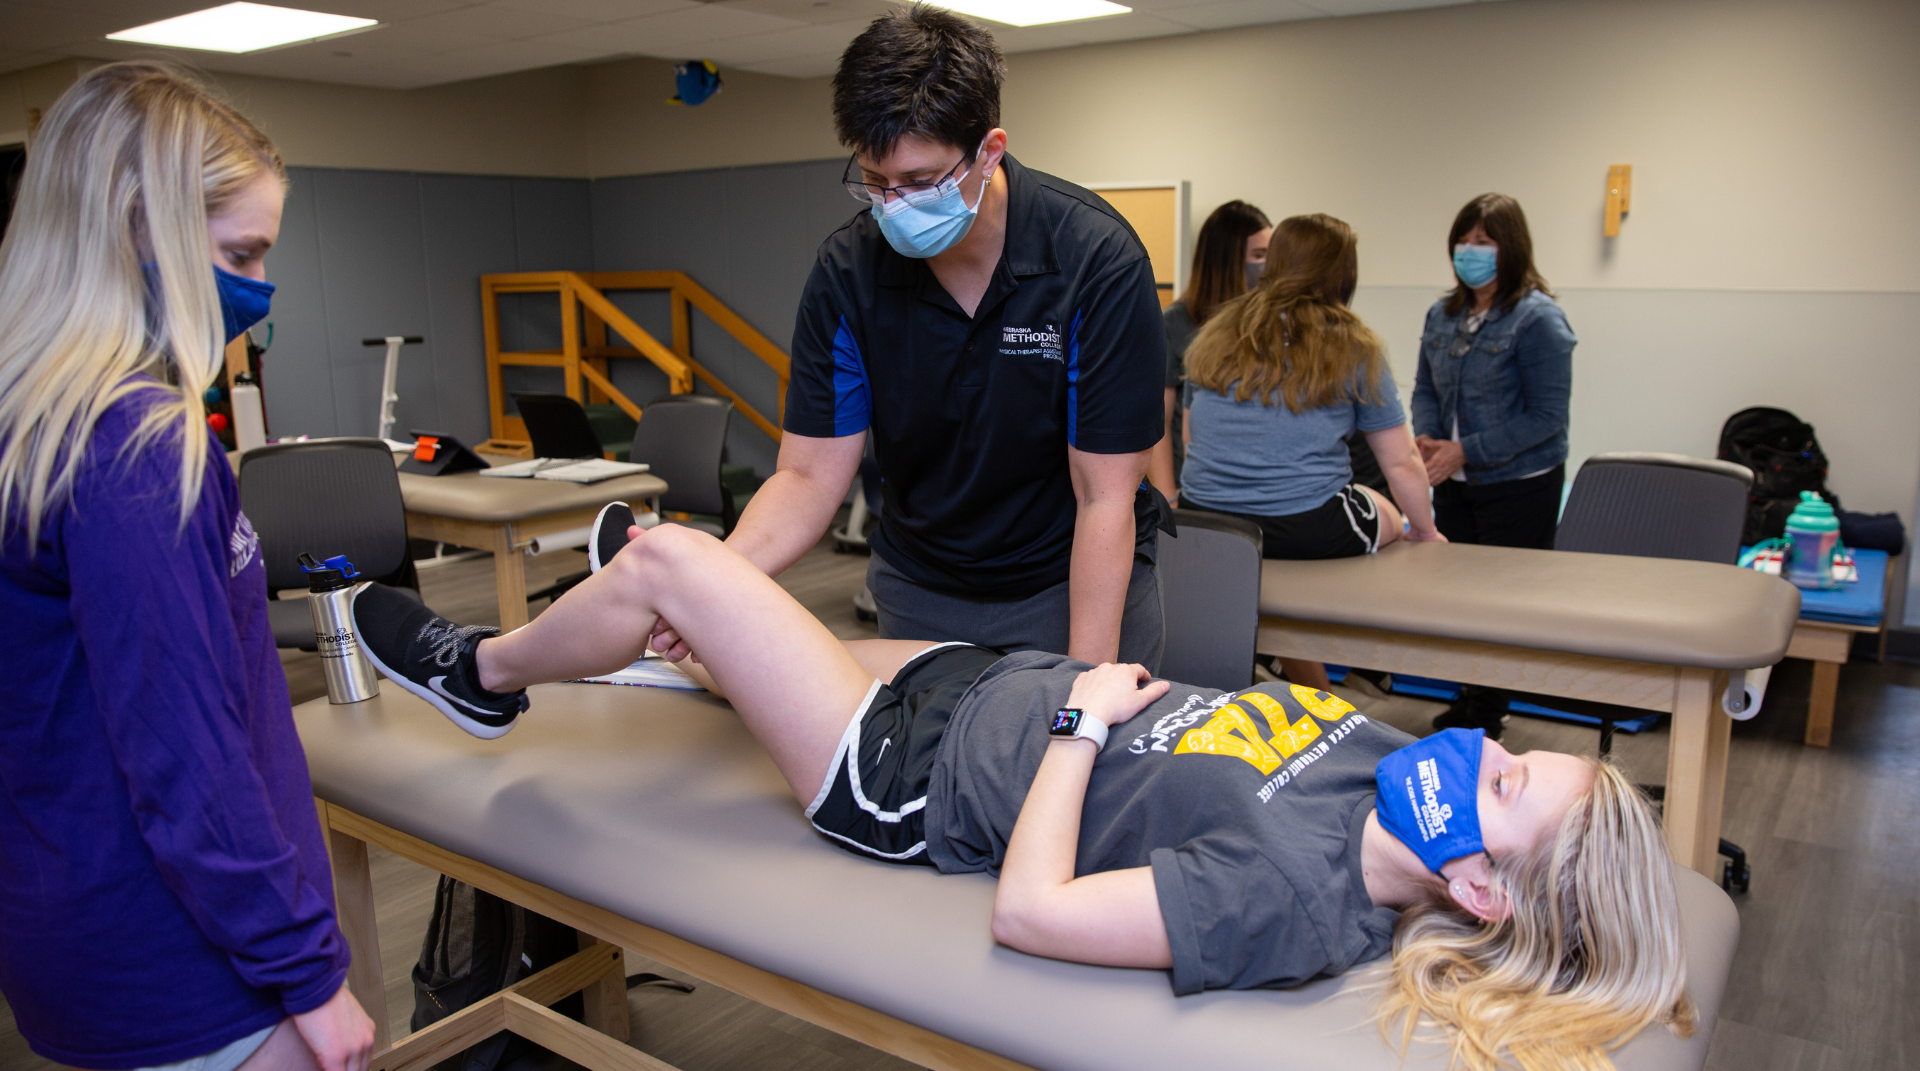 Nebraska Methodist College Physical Therapist Assistant Director Shannon Struby teaches students in a classroom.